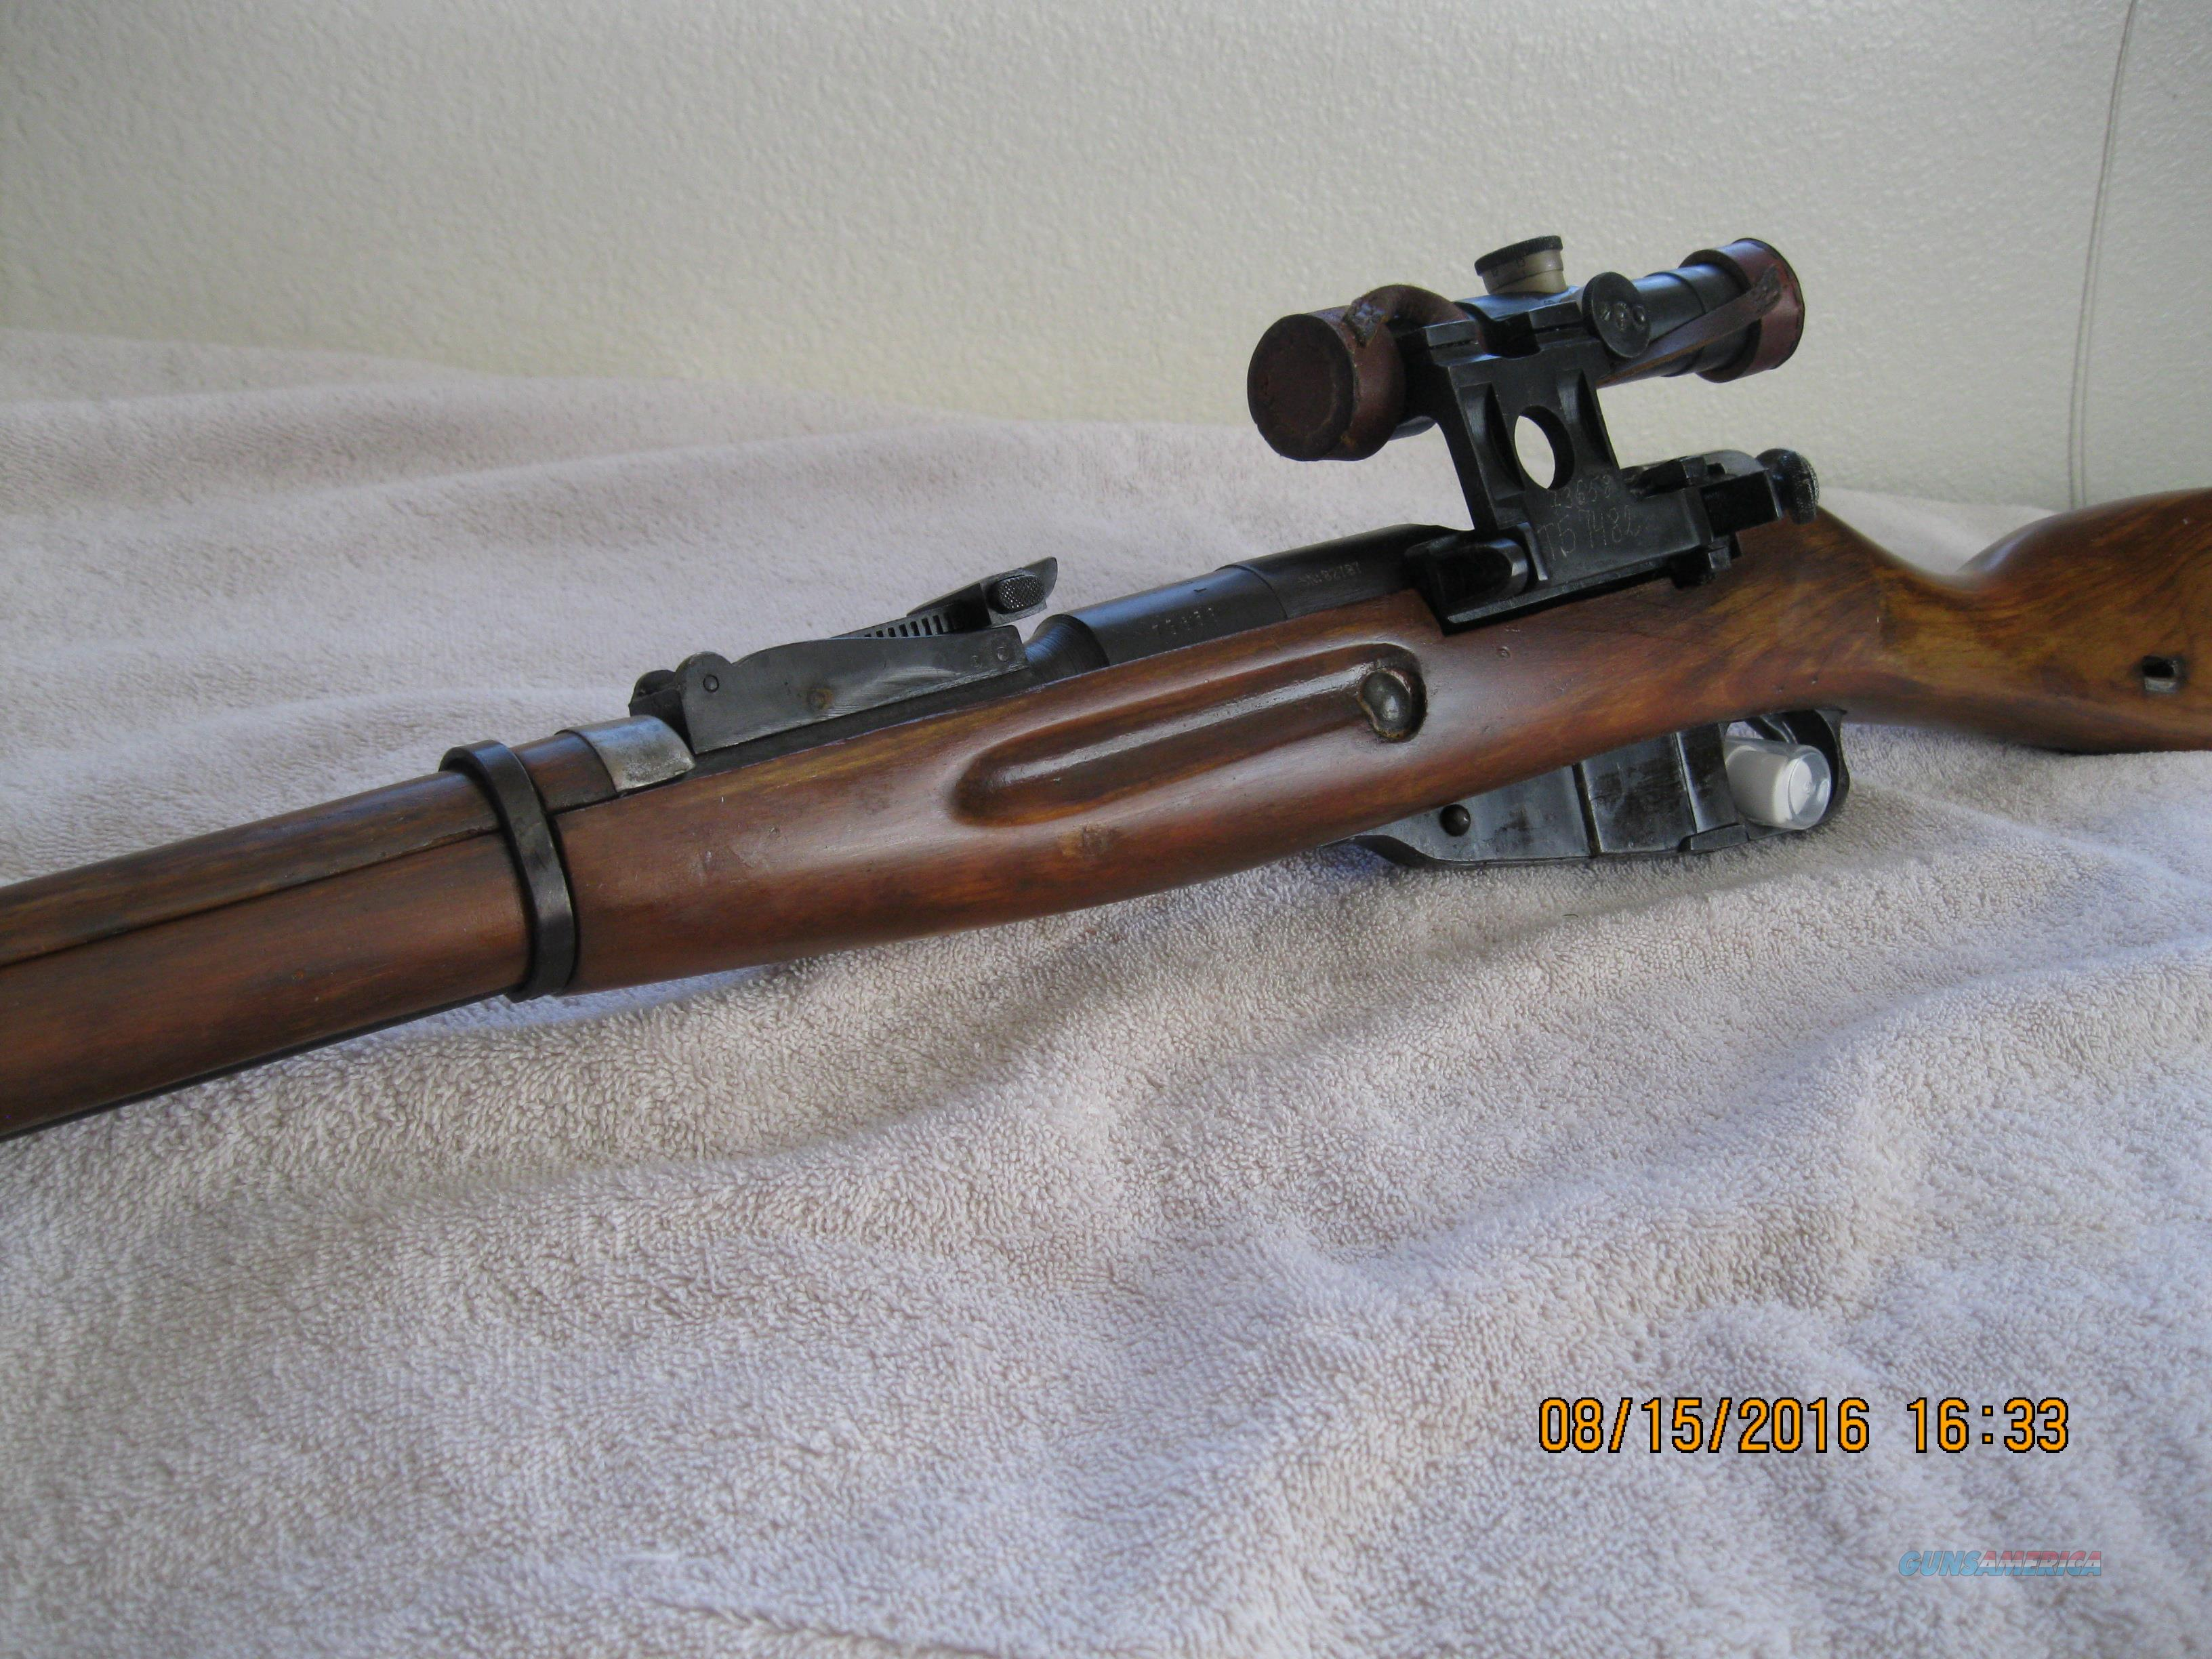 AUTHENTIC MOSIN NAGANT 91/30 SNIPER RIFLE  Guns > Rifles > Mosin-Nagant Rifles/Carbines